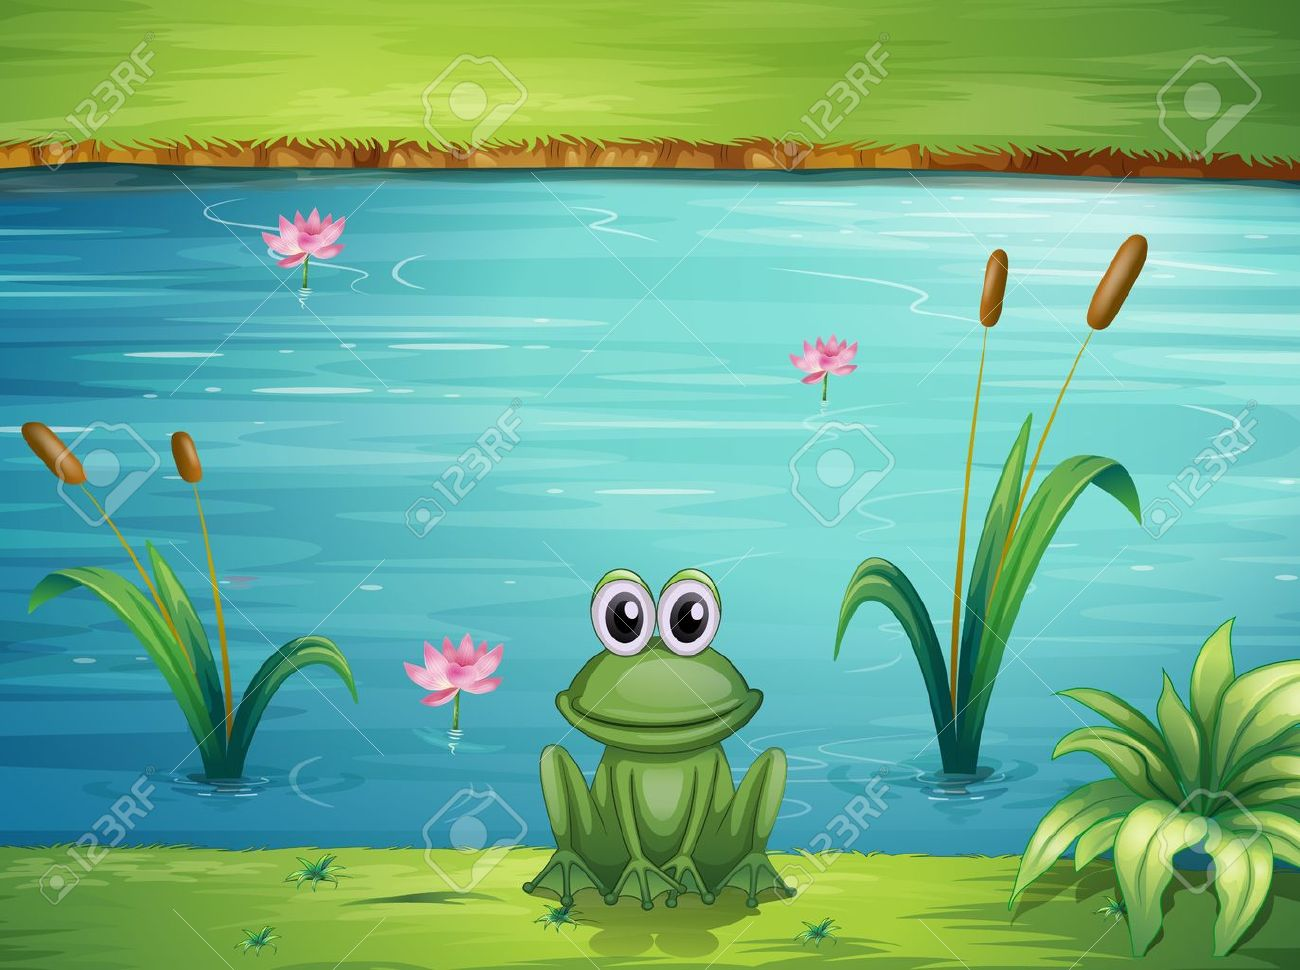 Illustration of a river and a frog in a beautiful landscape Stock Vector - 17161869